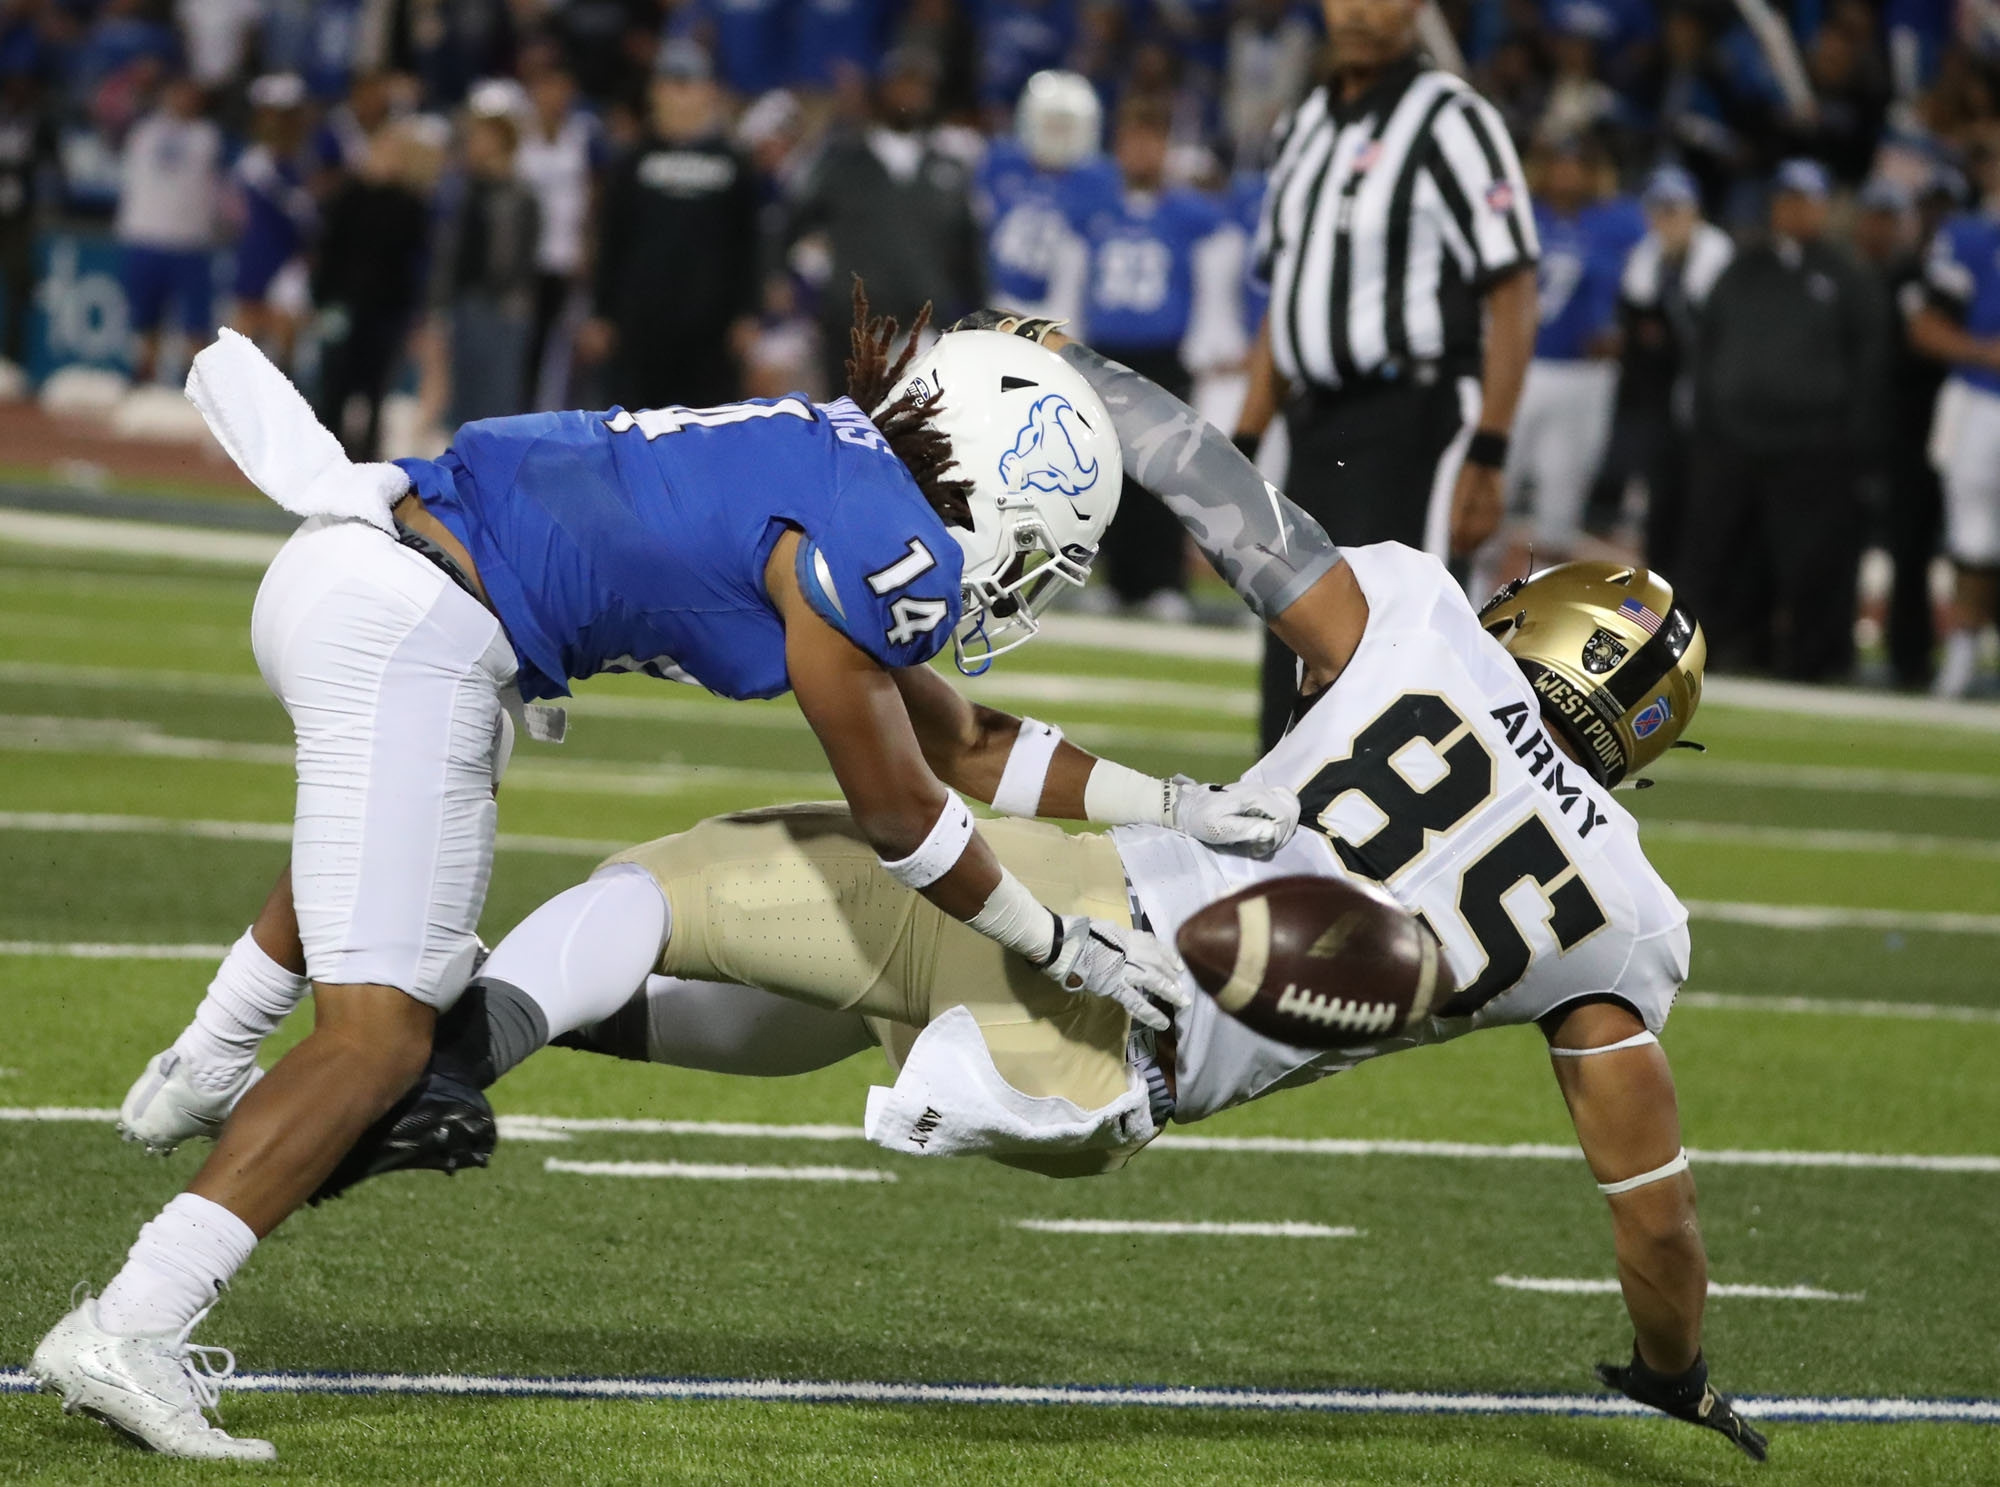 Buffalo Bulls cornerback Brandon Williams (14) breaks up a pass intended for Army Black Knights tight end Quinten Parker (85) in the first quarter at UB Stadium in Amherst, N.Y. on Saturday, Sept. 24, 2016.  (James P. McCoy/ Buffalo News)